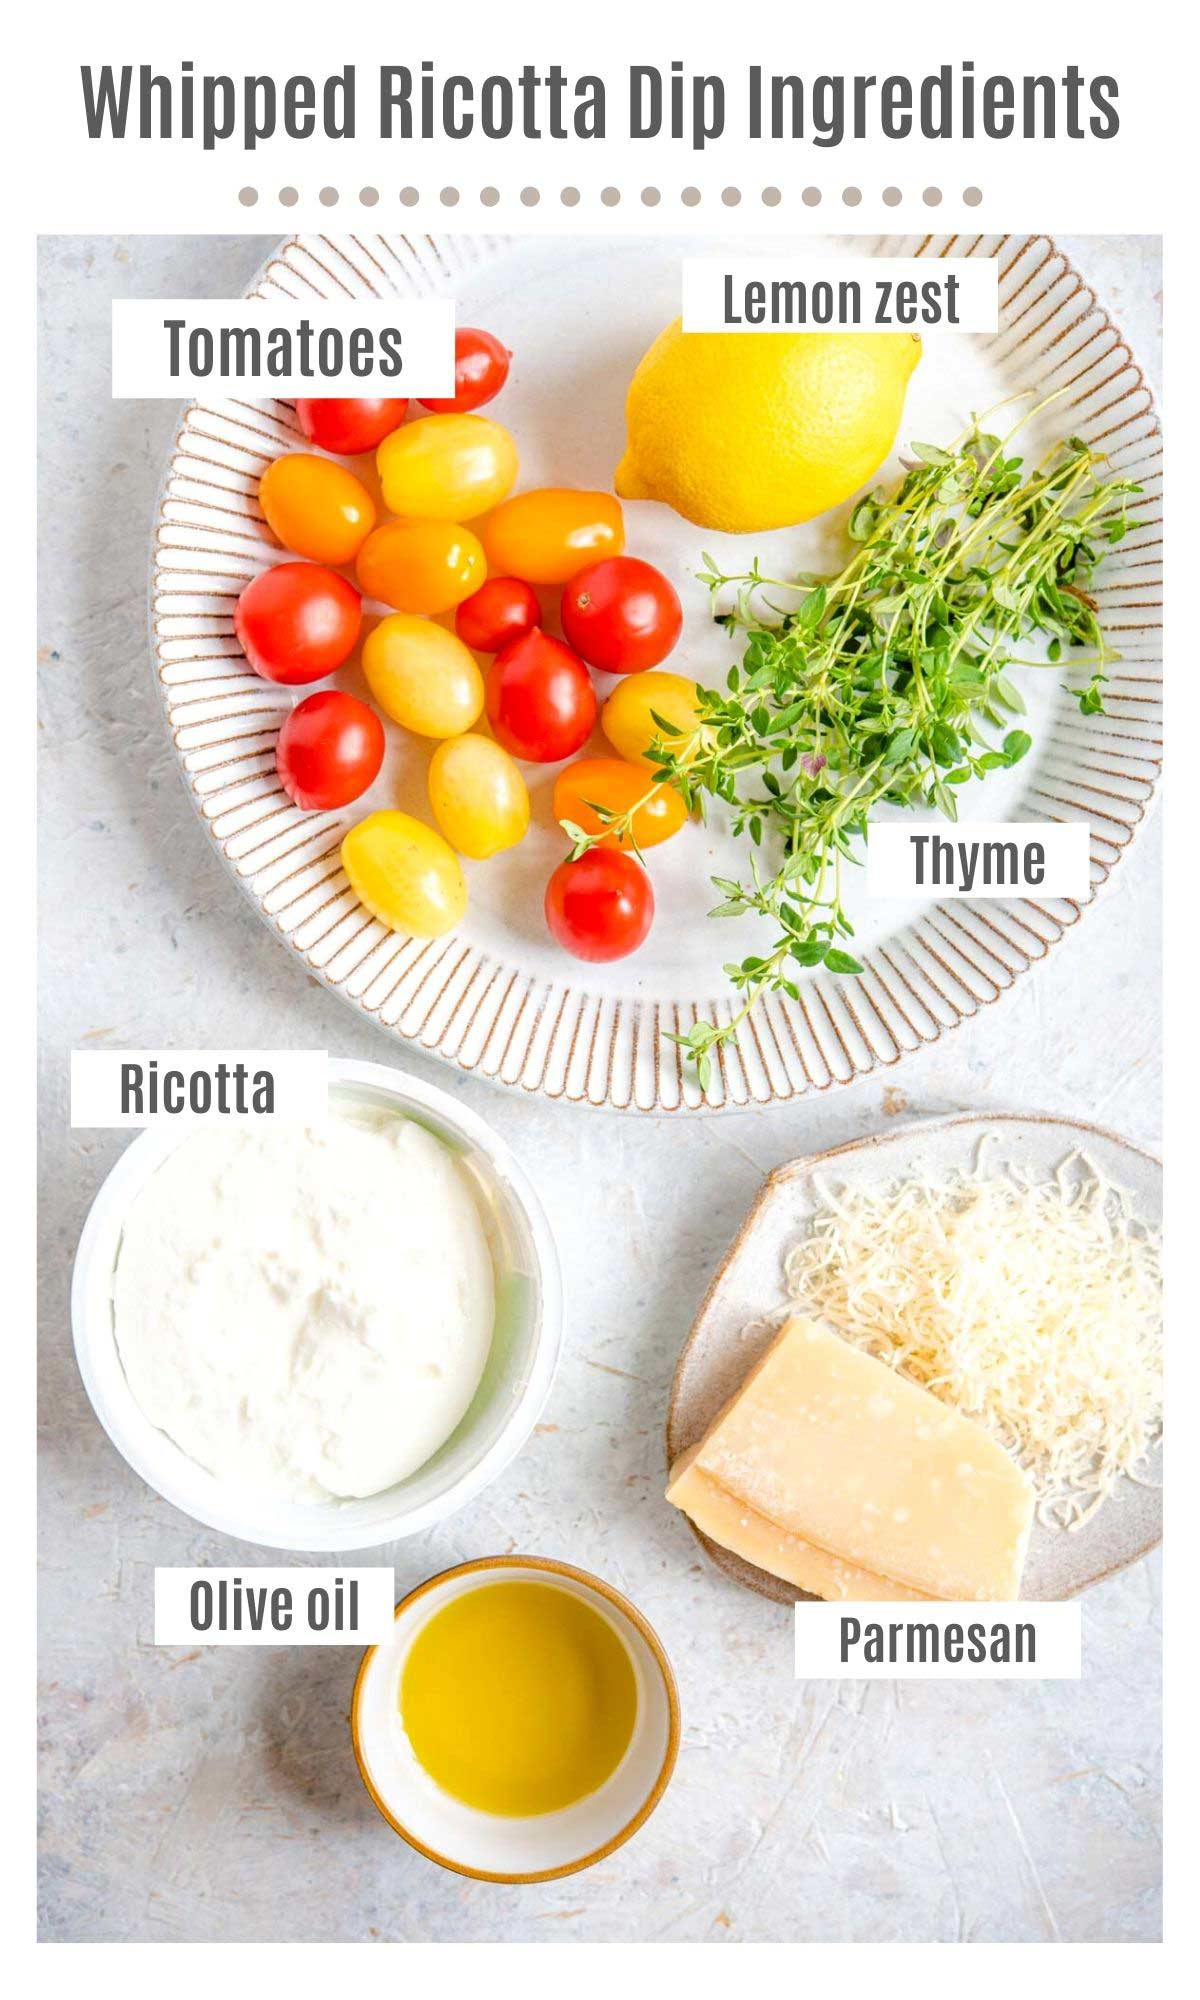 An overhead shot of all the ingredients you need to make whipped ricotta dip with tomatoes